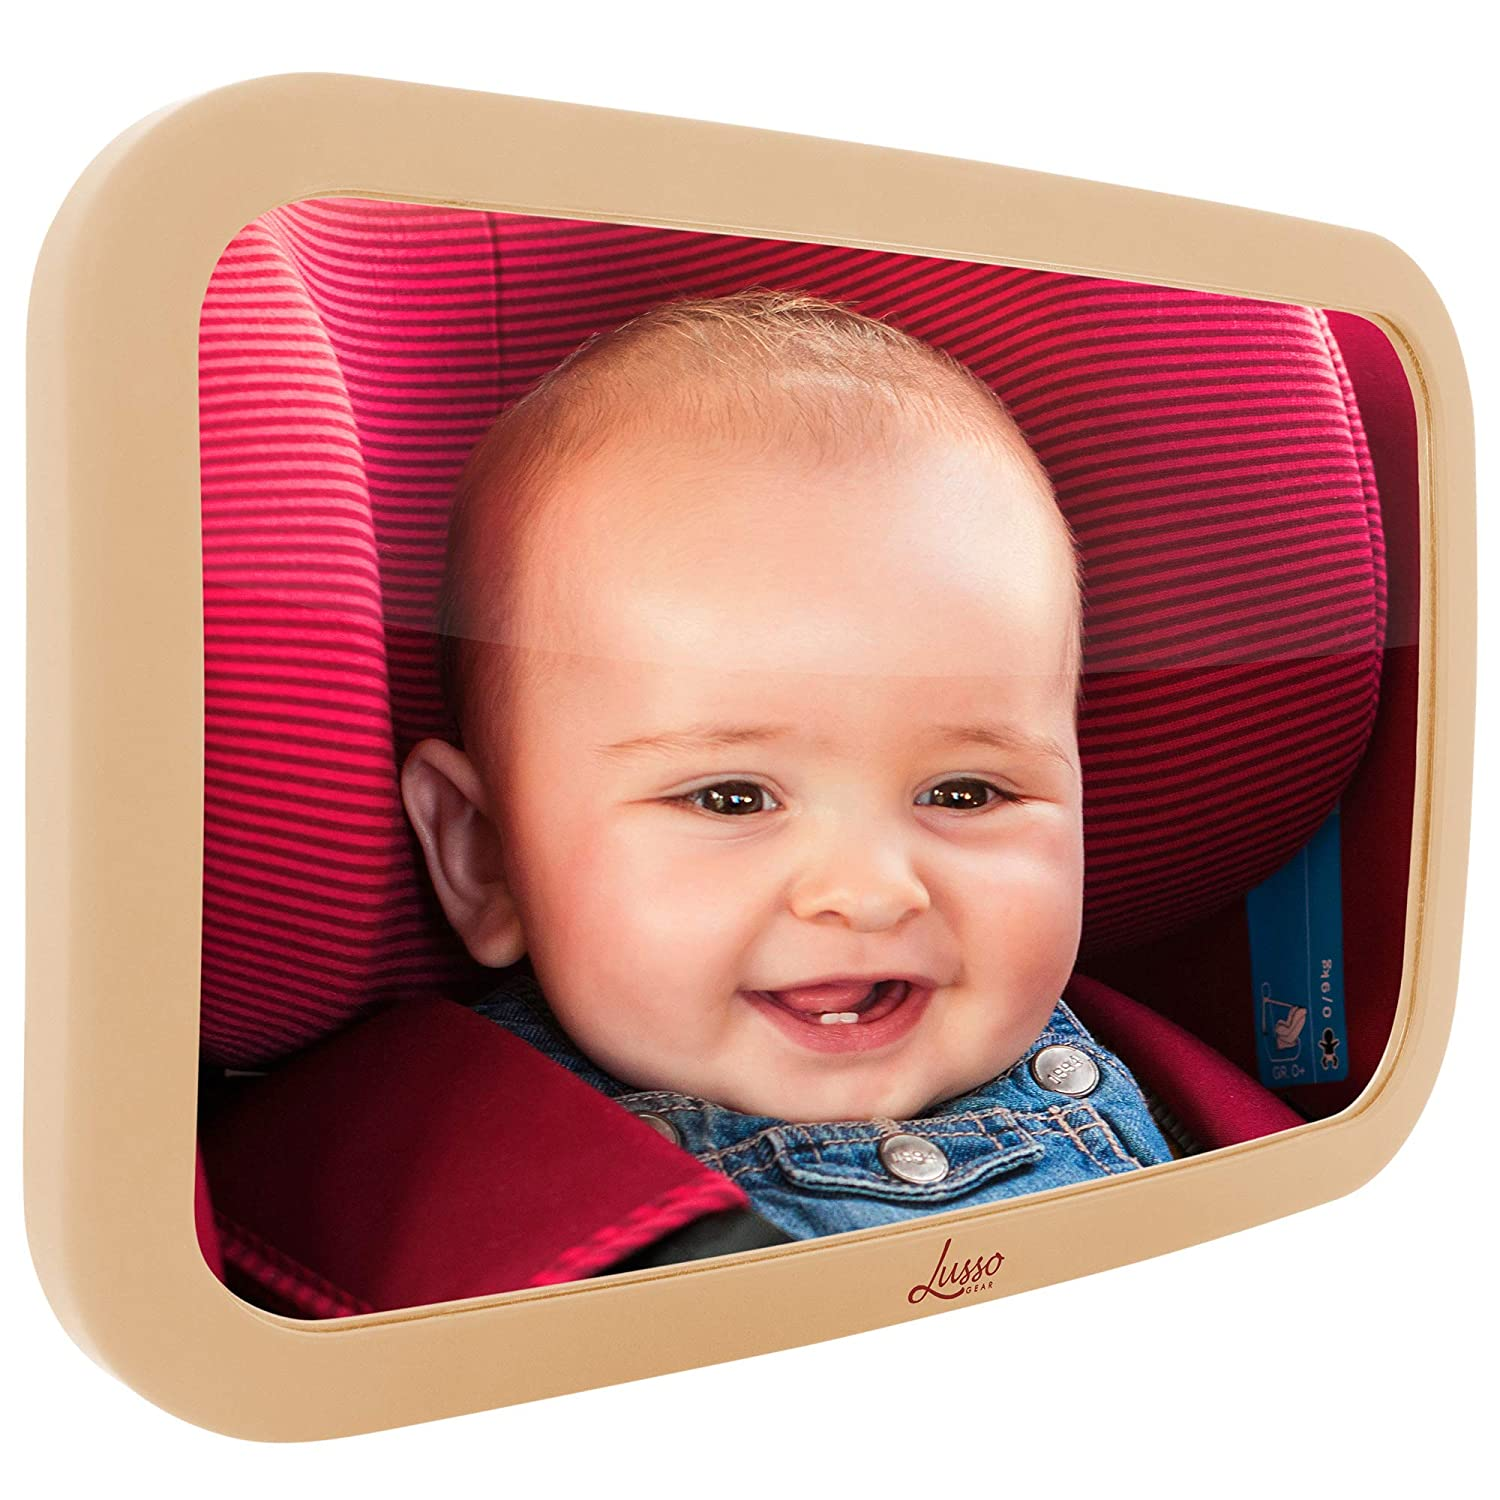 Lusso Gear Baby Backseat Mirror for Max 40% OFF Free Shipping New - Most Car Stabl and Largest